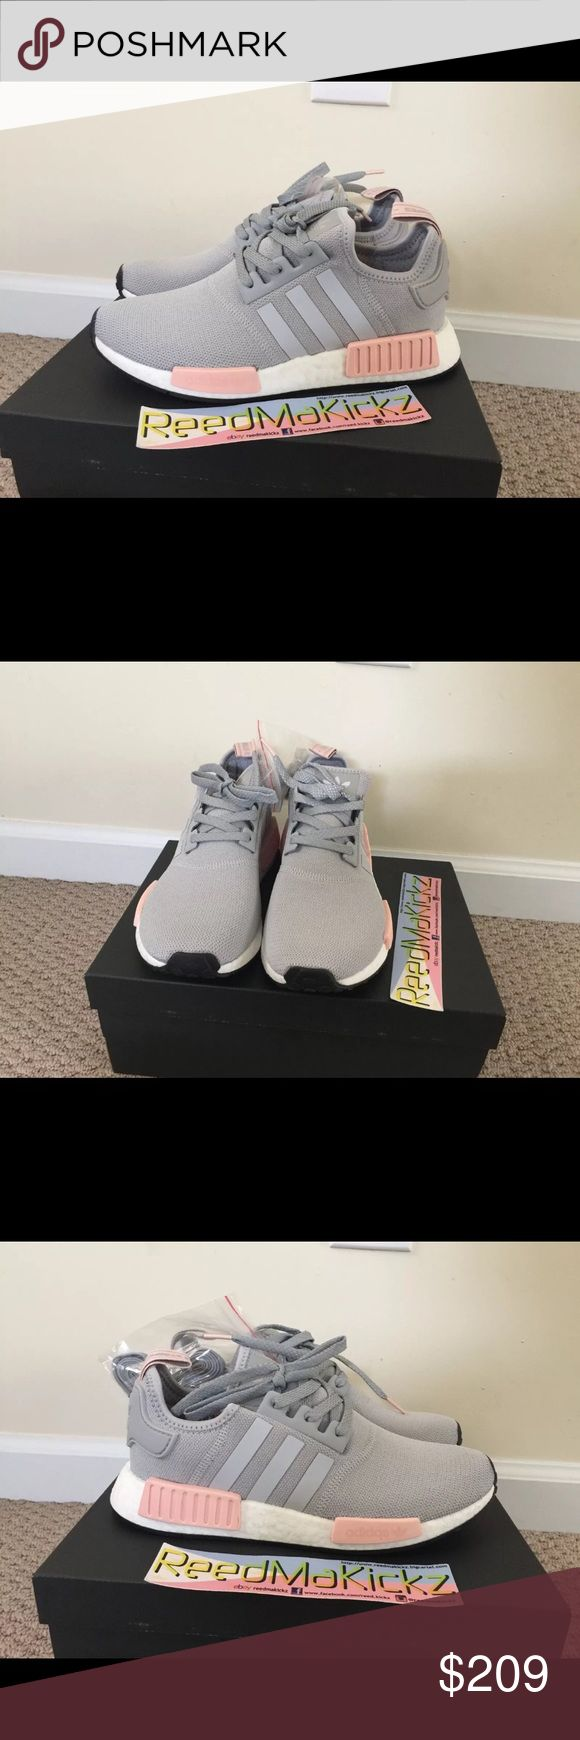 Adidas NMD R1 Light onix Vapour pink offspring 100% authentic!!! brand new womens sizes style code BY3058 adidas Shoes Sneakers